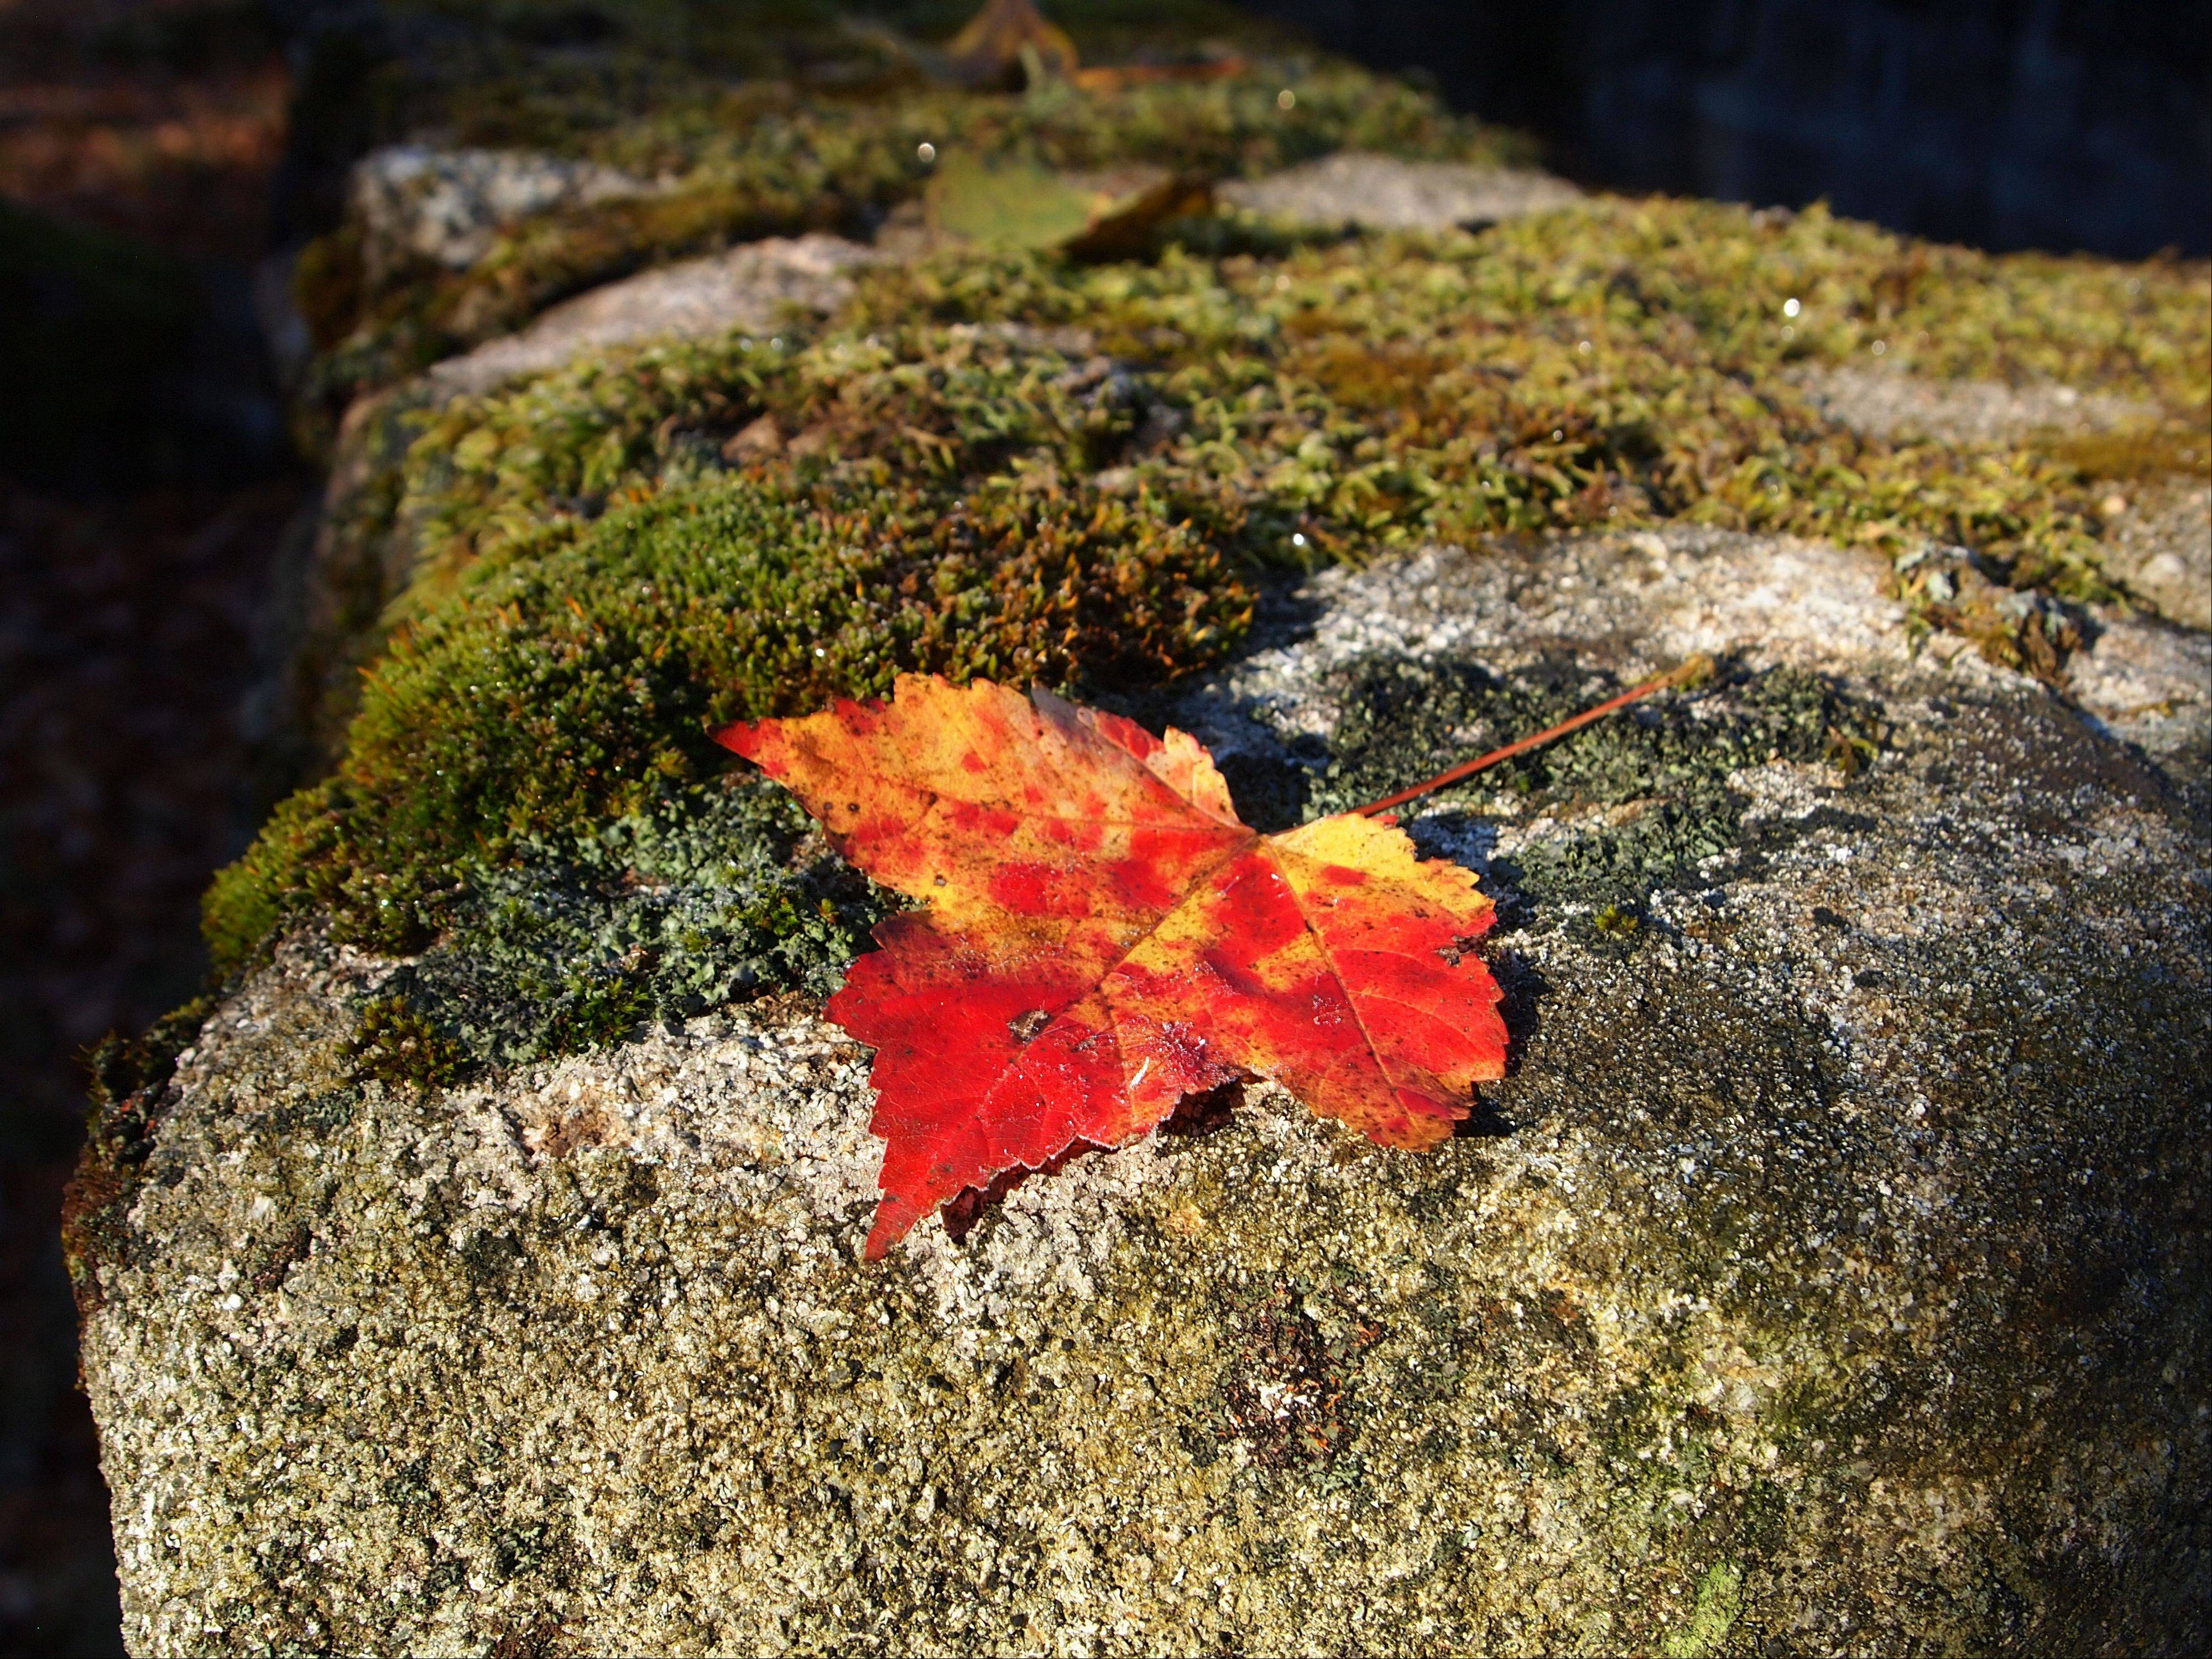 A scarlet leaf stands out on a moss and lichen covered stone on a bright fall day in Adirondack State Park, New York in October.